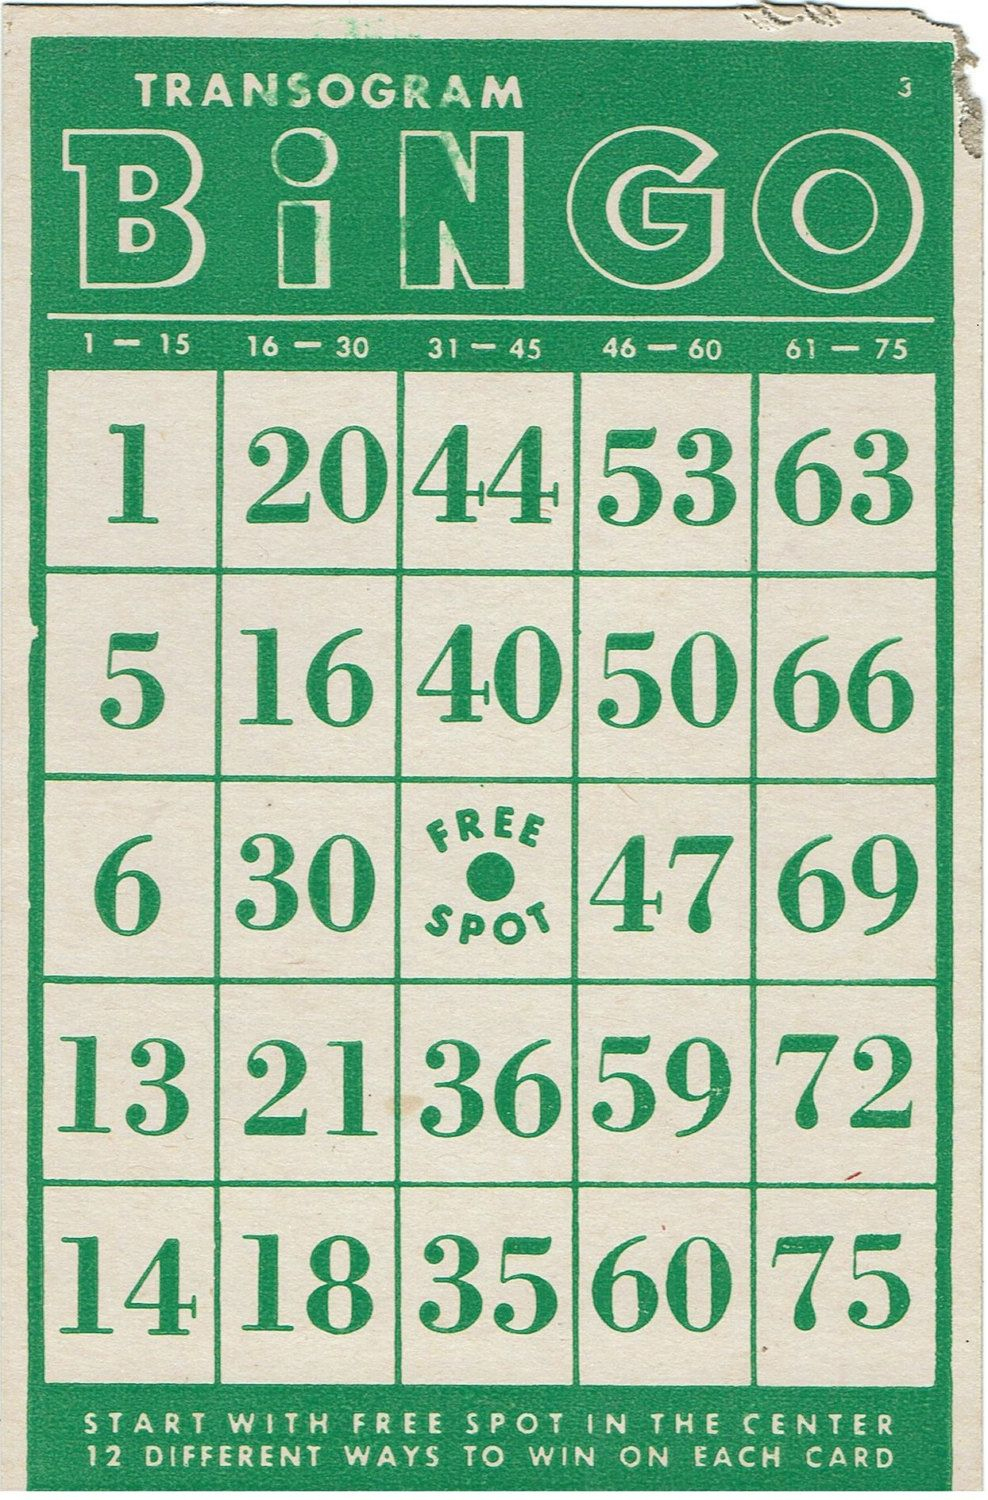 Vintage Transogram Bingo Card Green And Whiteassemblager